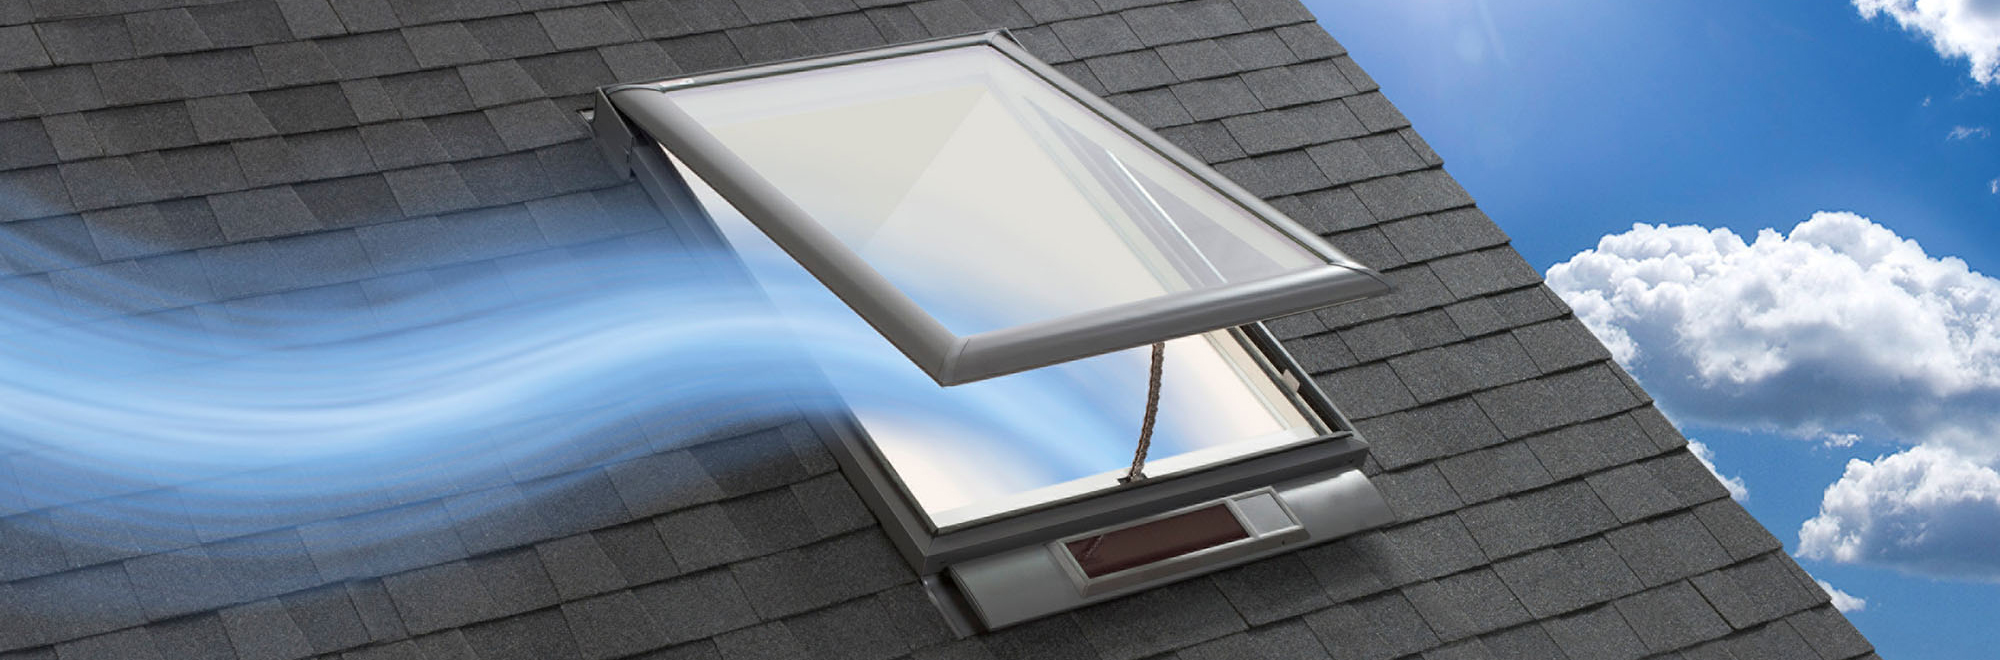 VELUX - Let the Sun Shine In! VELUX